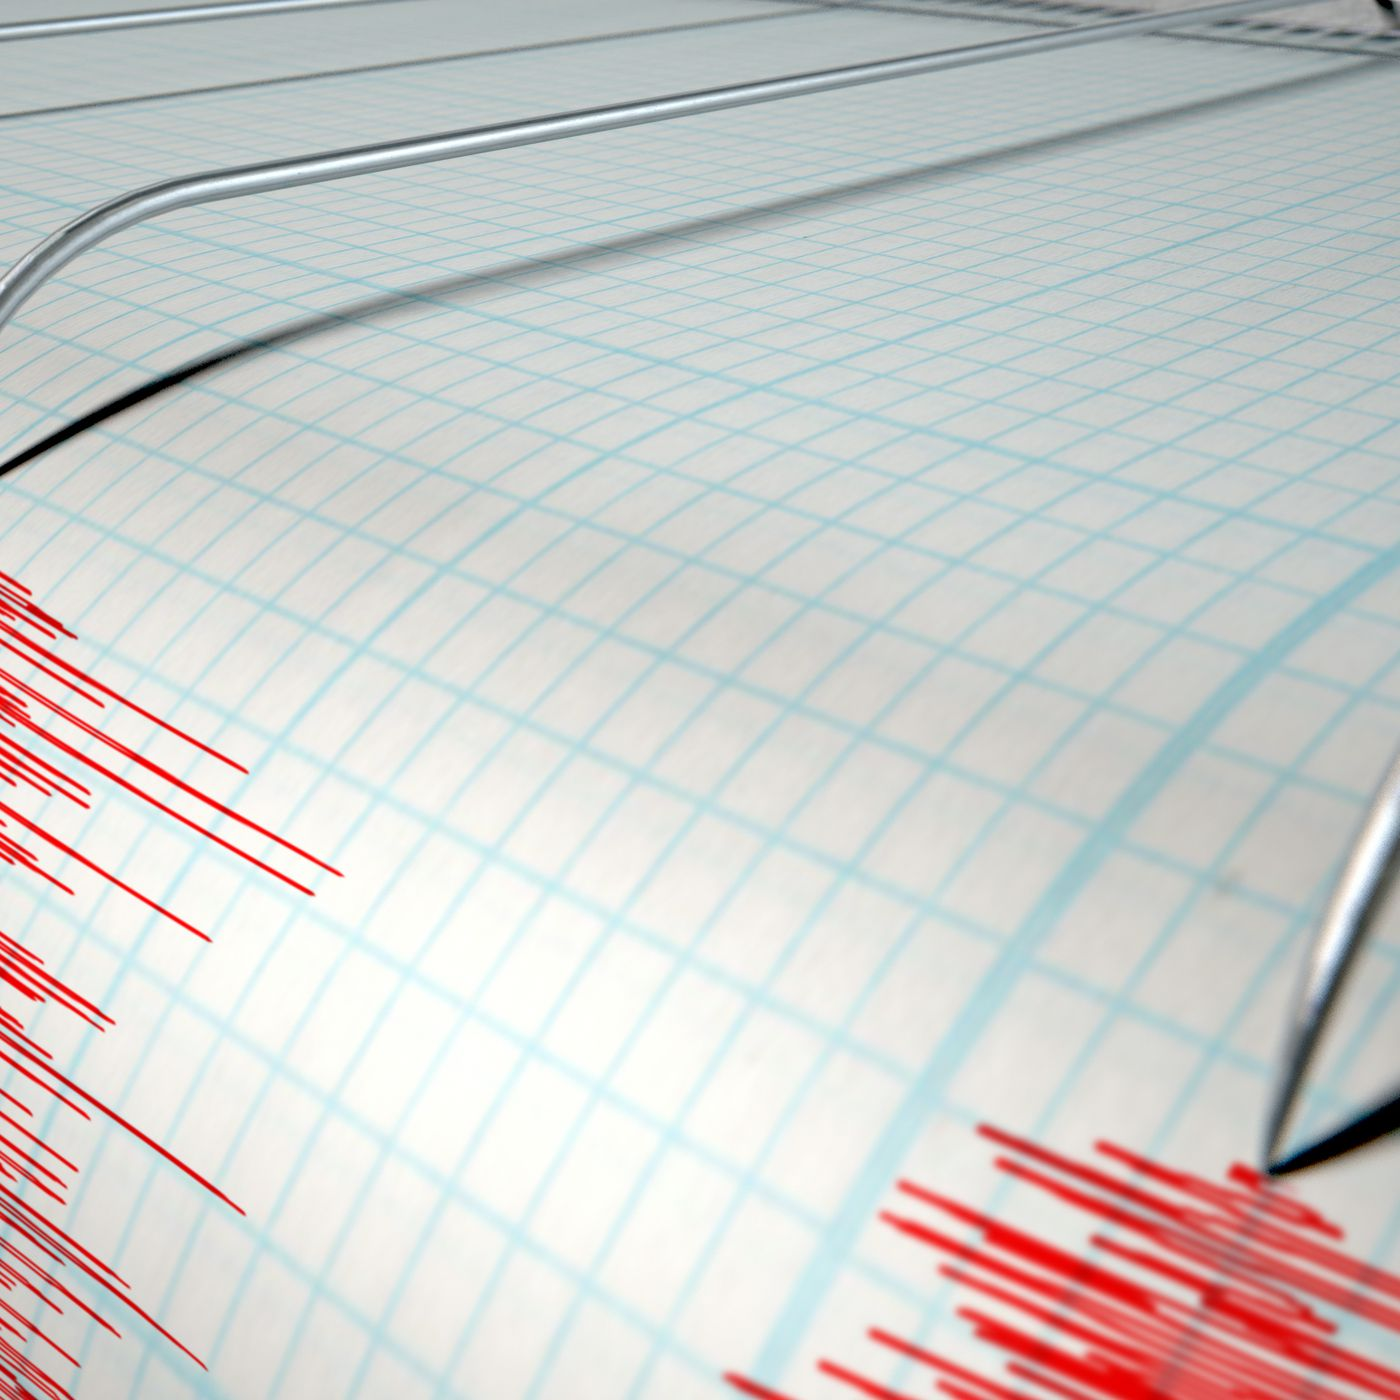 Lie detectors: Why they don't work, and why police use them